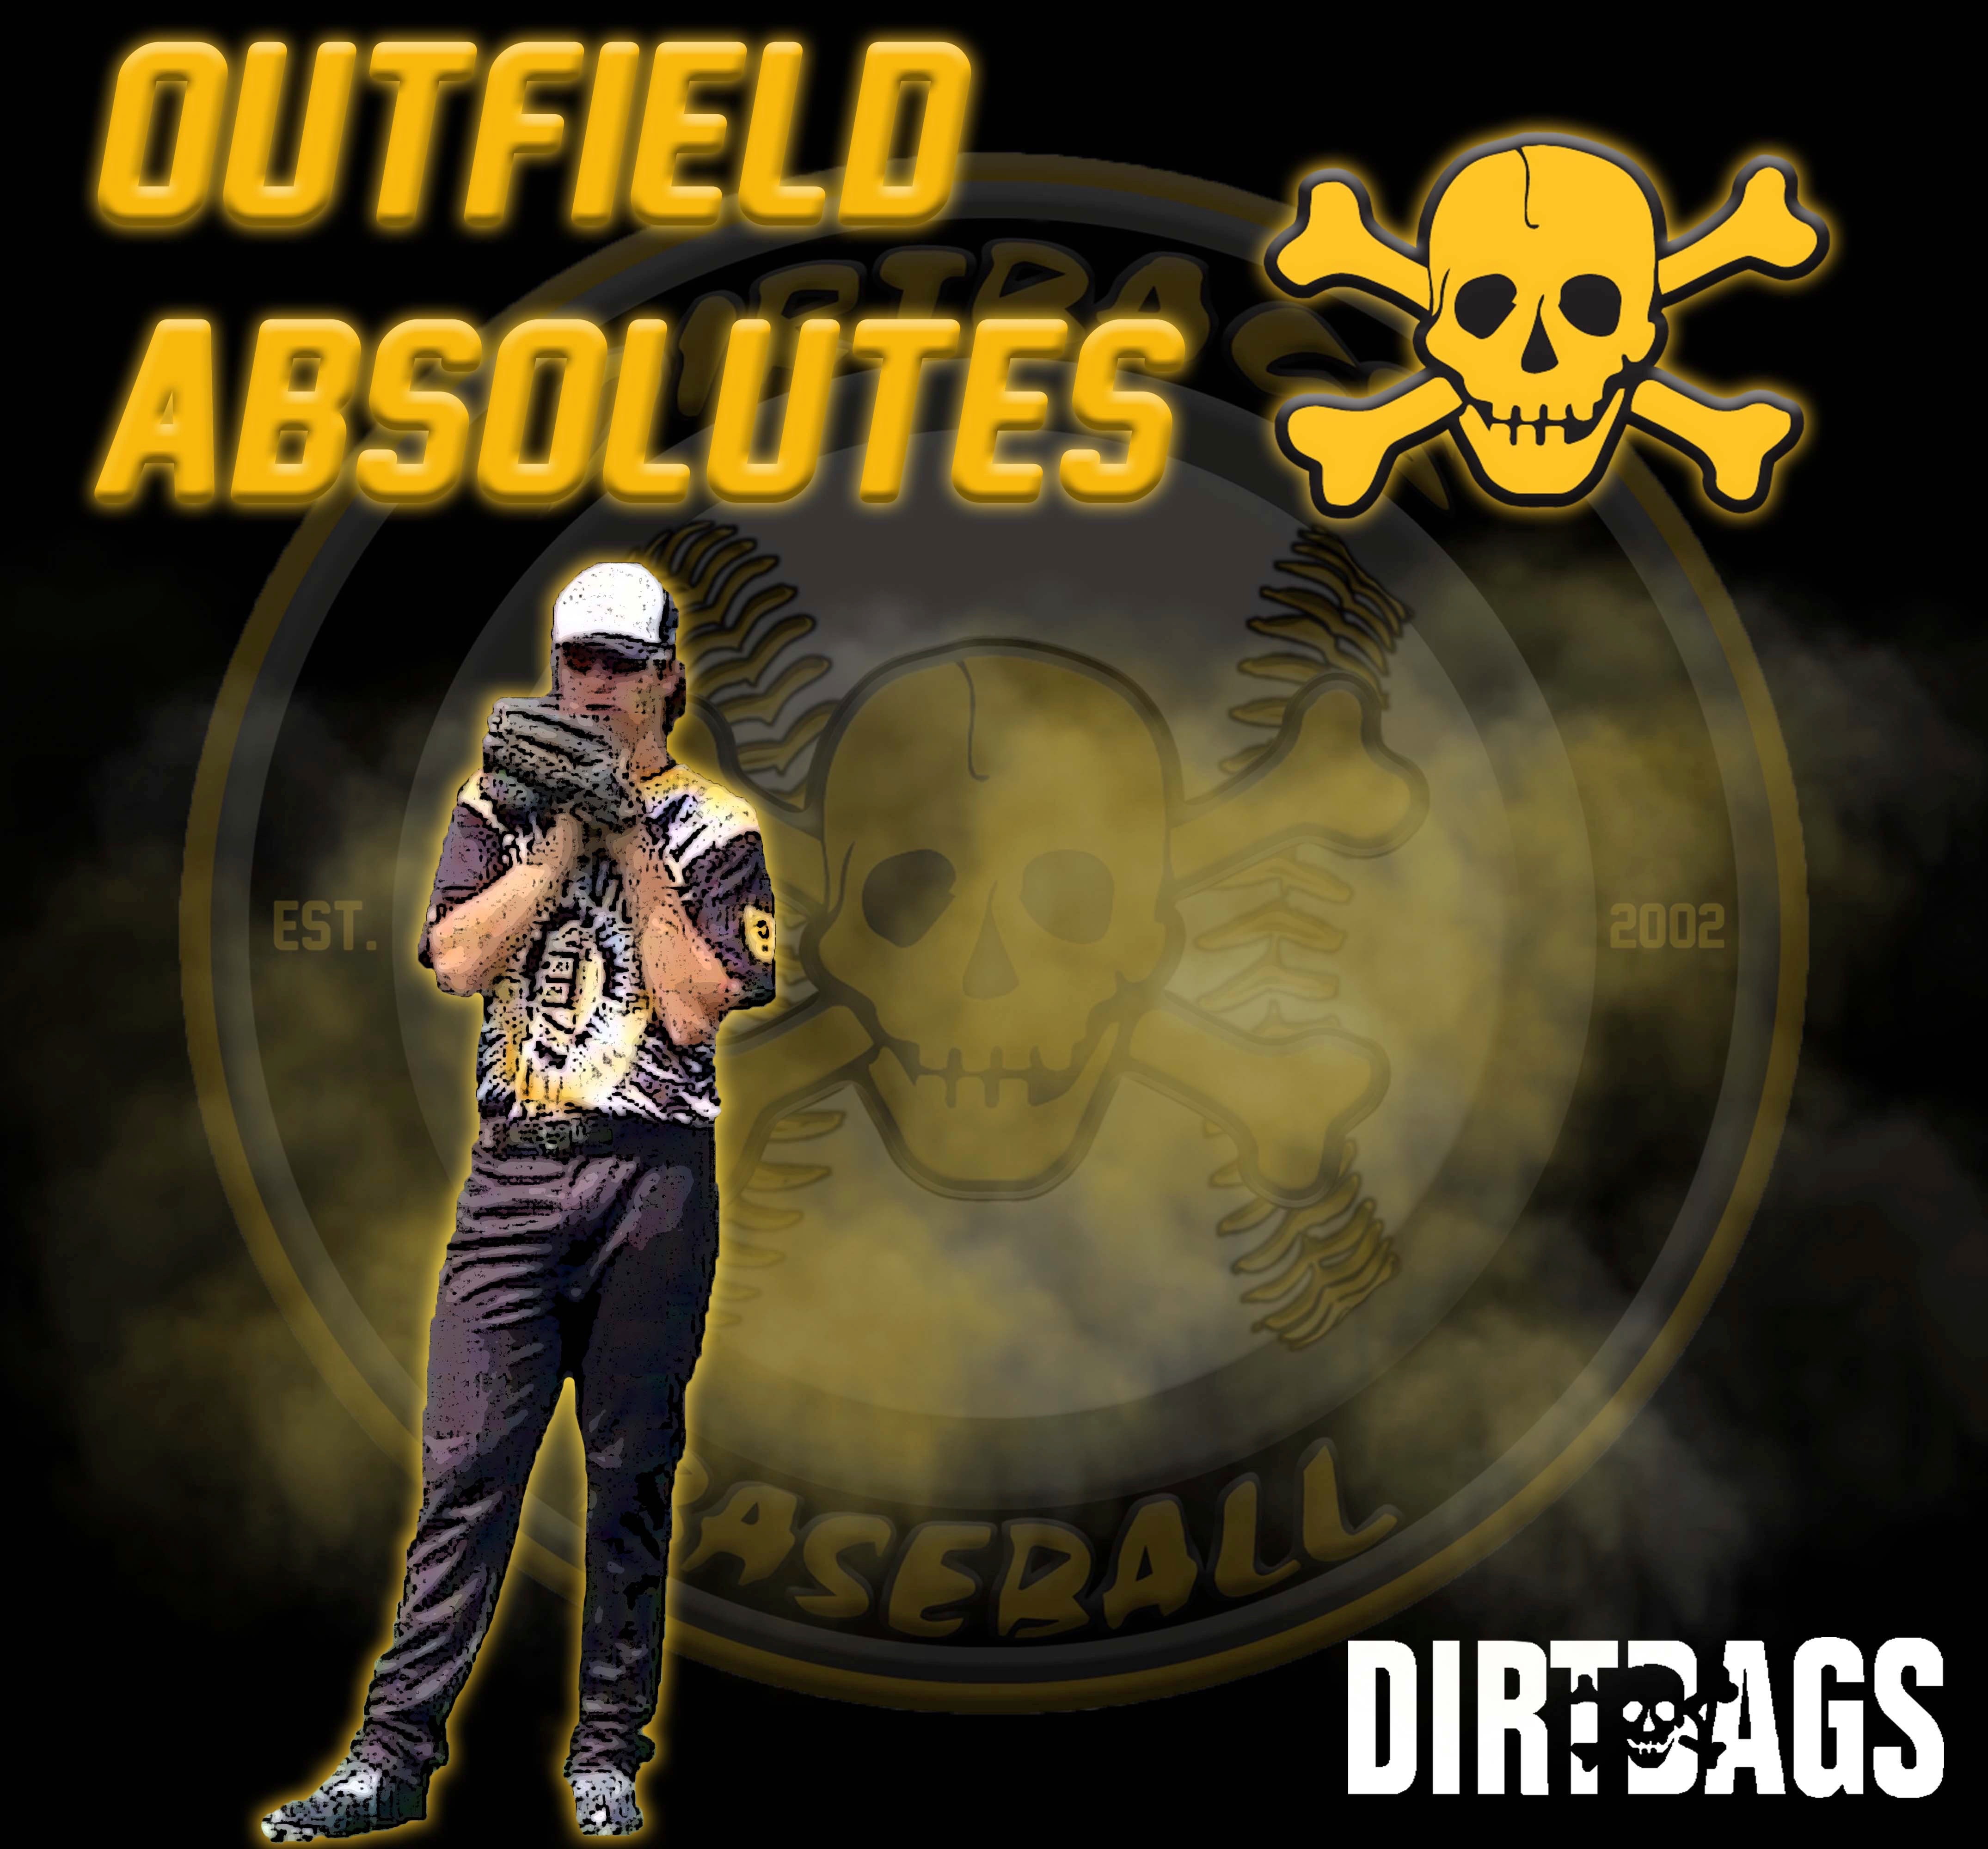 Coaches Corner: Outfield Absolutes